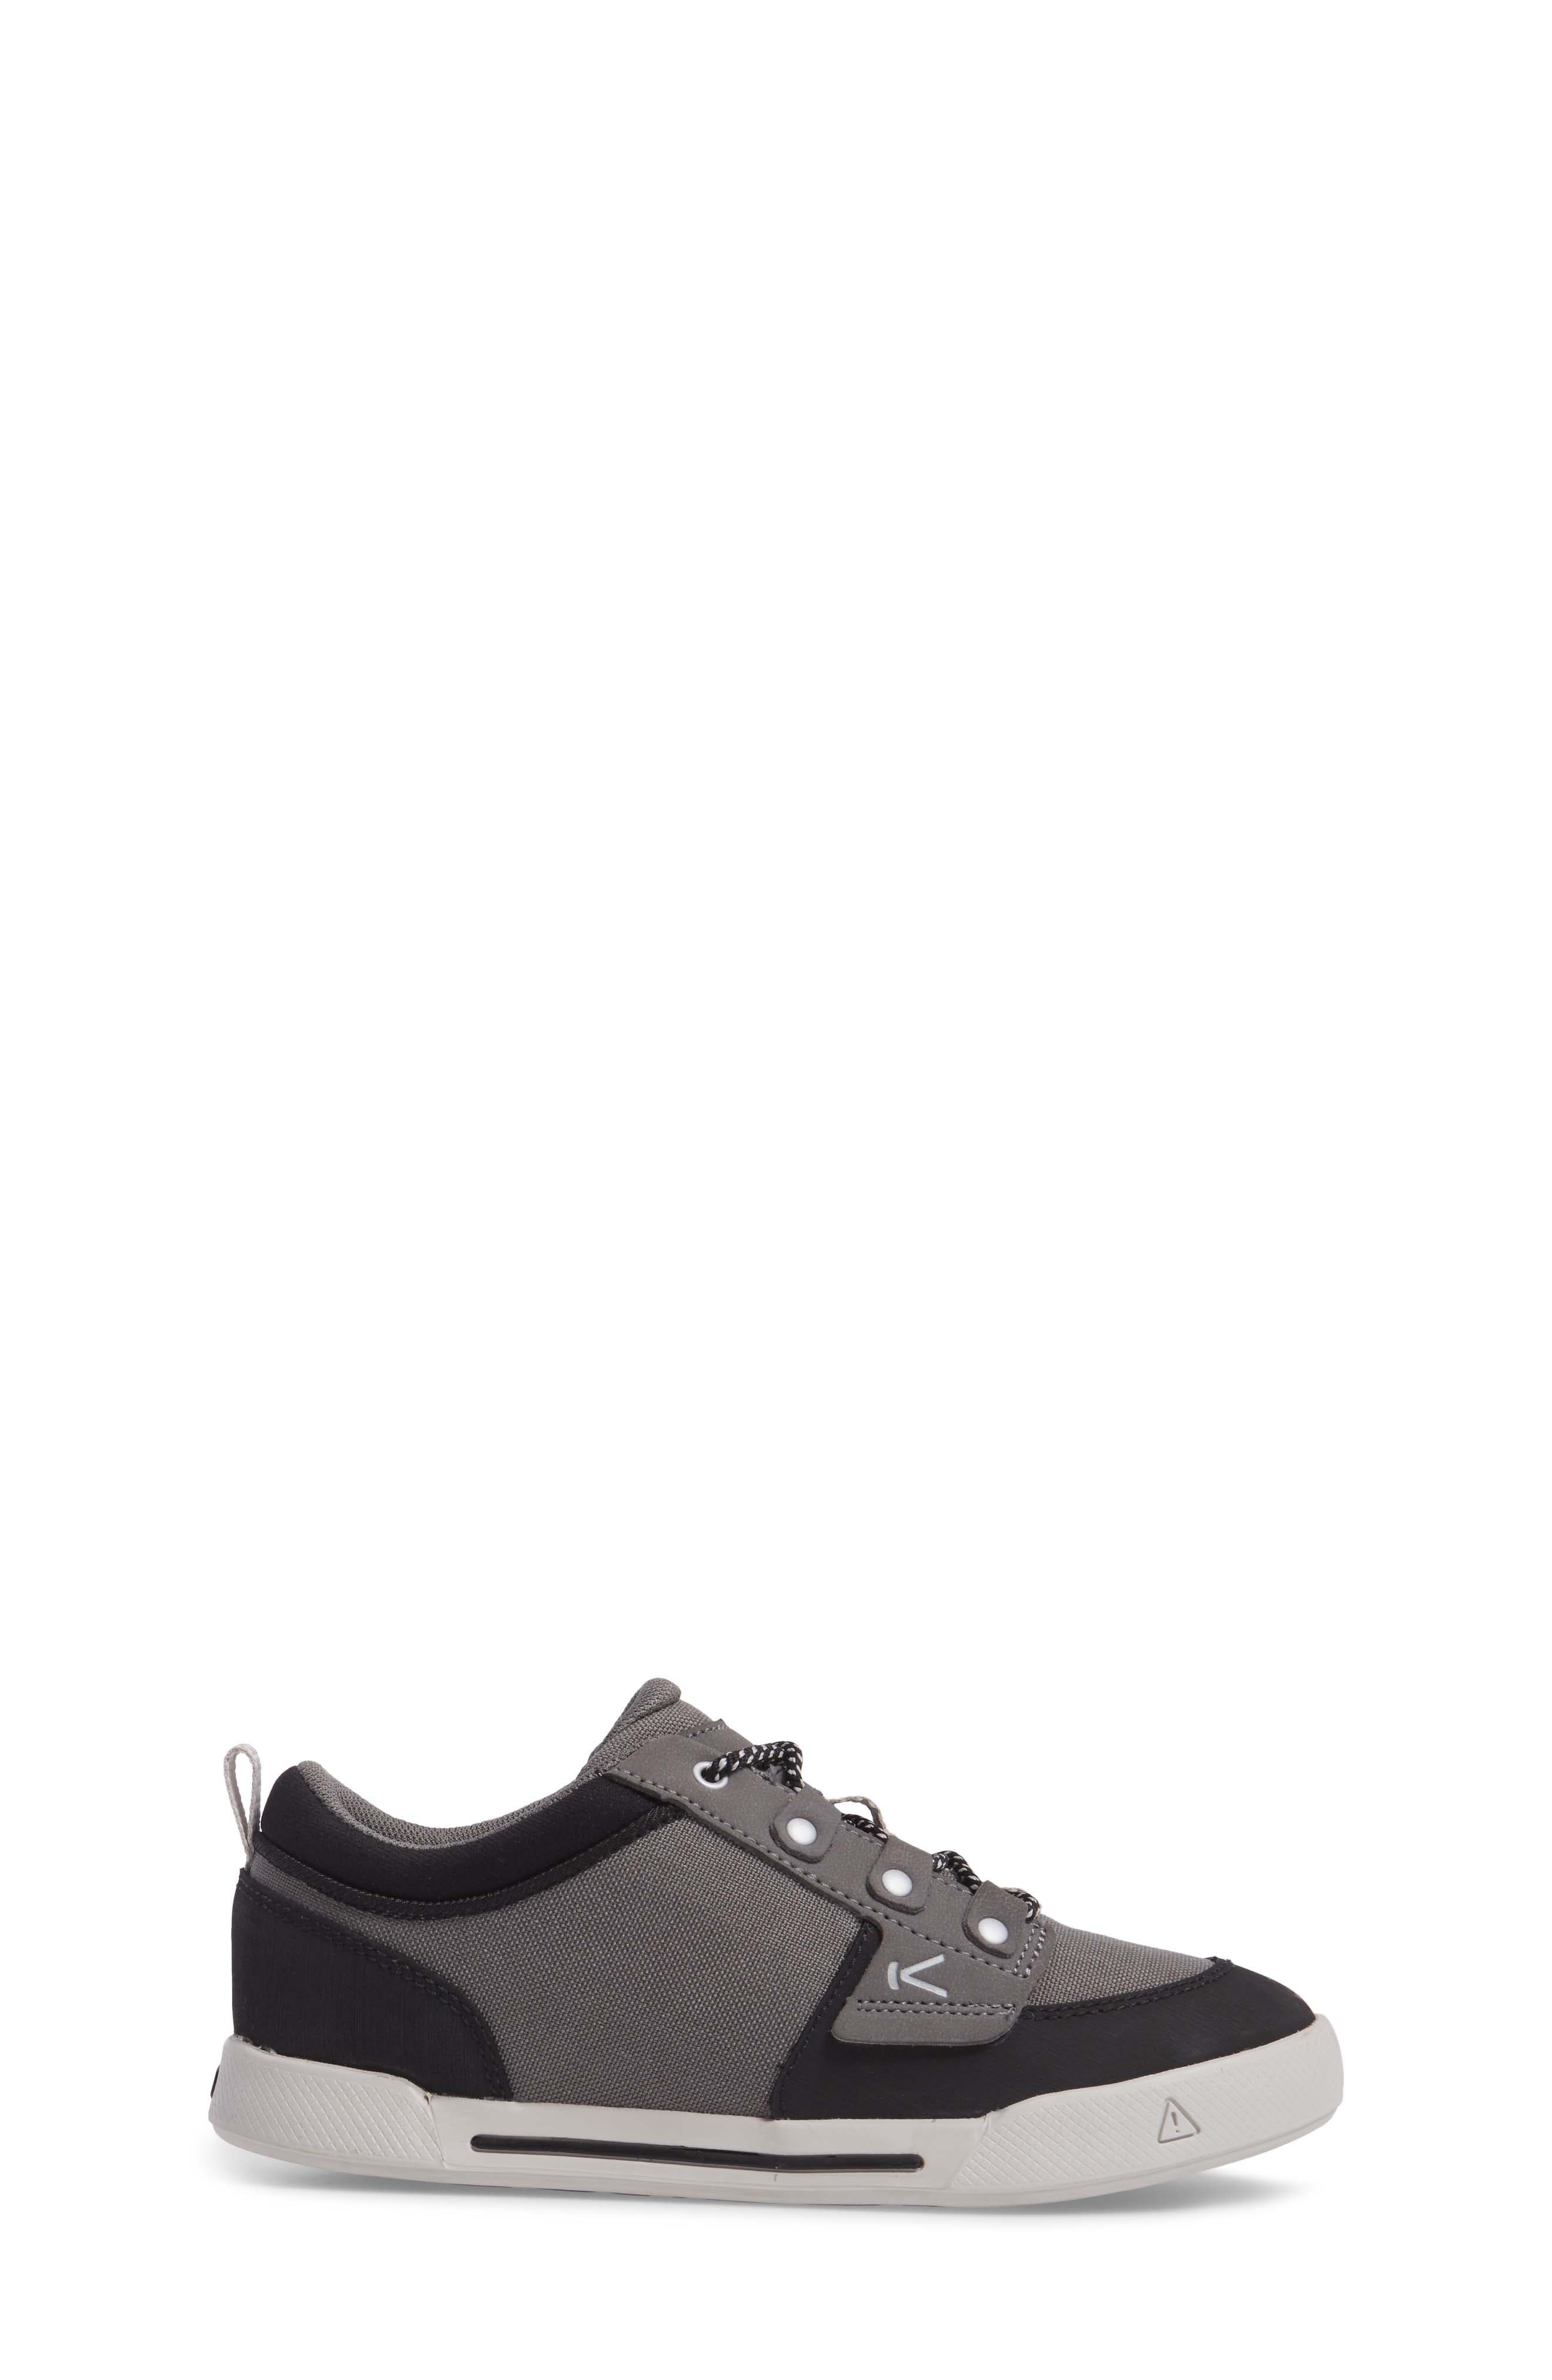 Encanto Wesley Sneaker,                             Alternate thumbnail 3, color,                             Gargoyle/ Black